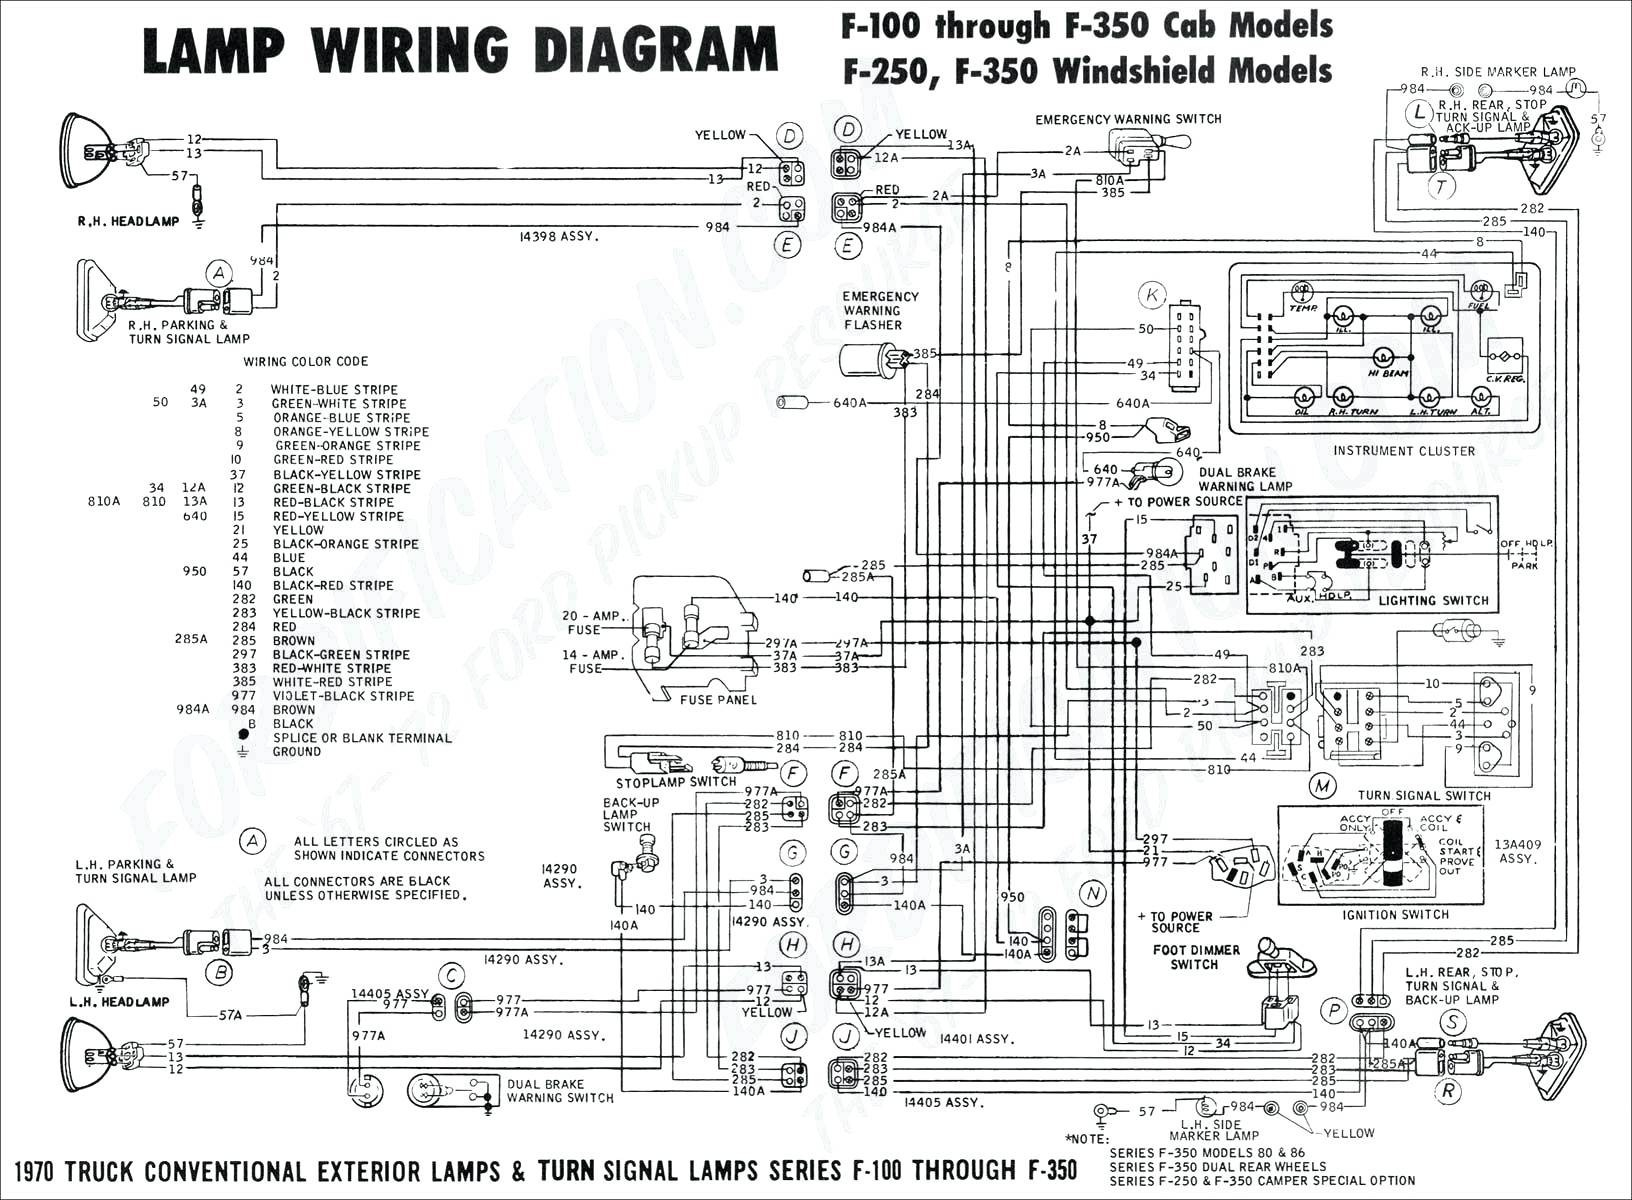 infratech heater wiring diagram Collection-Belimo Lmb24 3 T Wiring Diagram Perfect Wd Series Infrared Dual Element Outdoor Heaters – Infratech 4-r